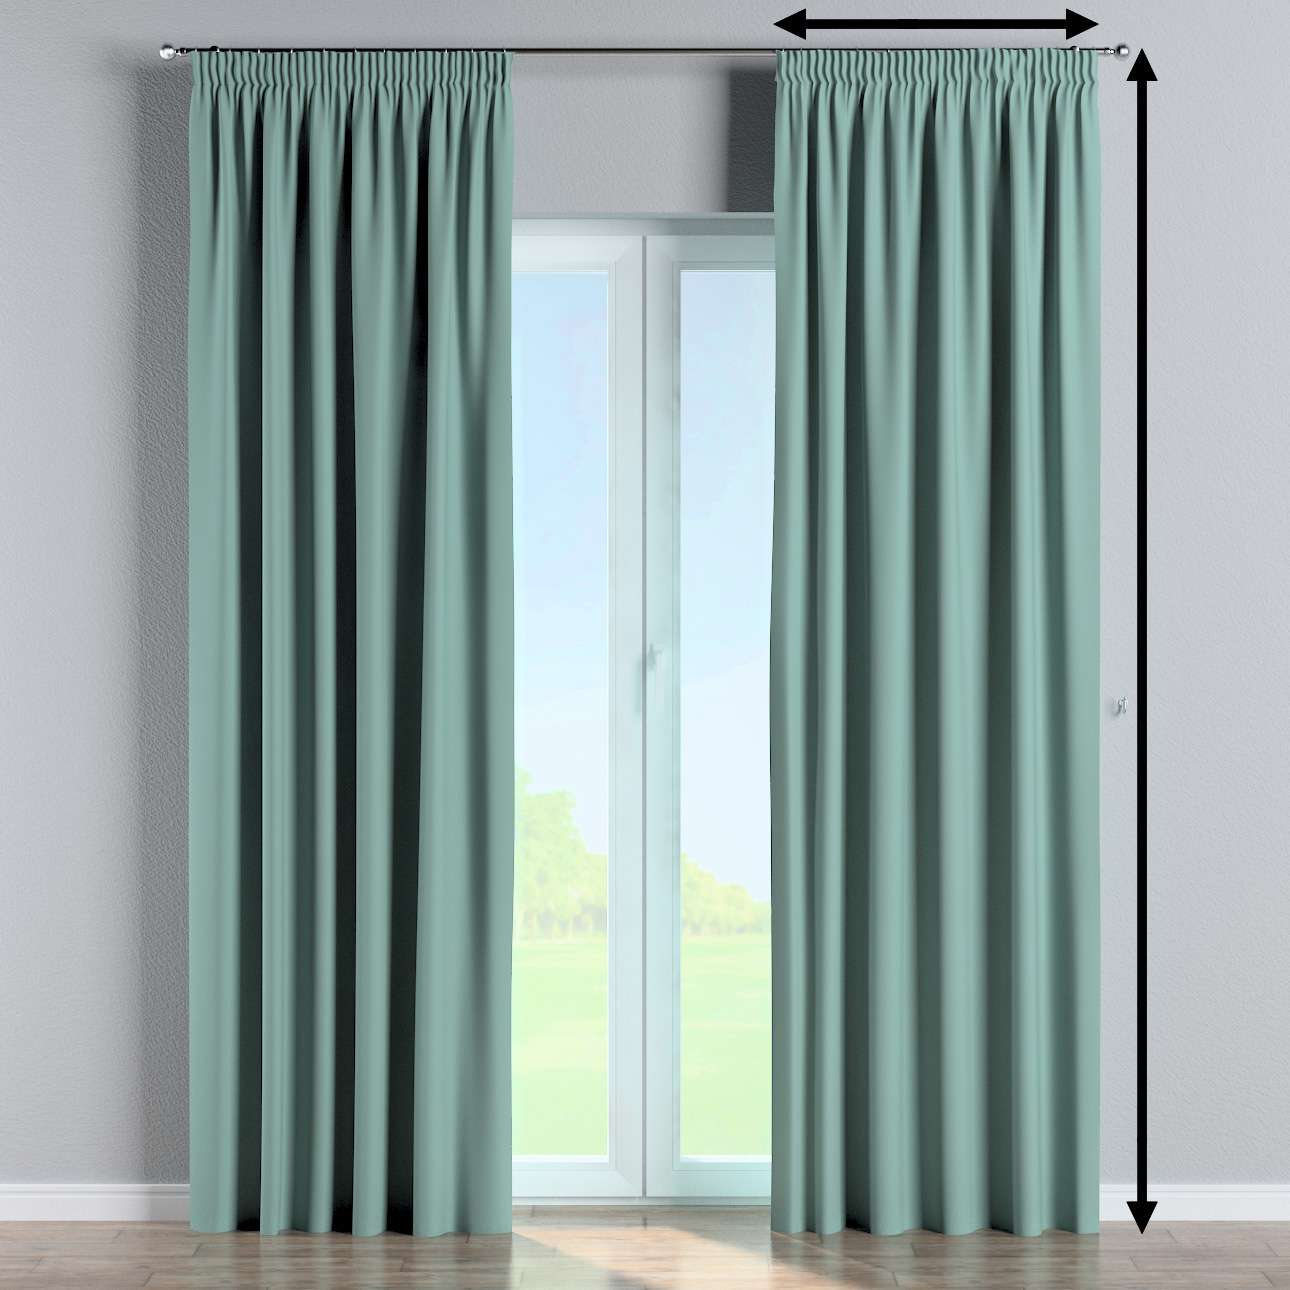 Blackout pencil pleat curtain in collection Blackout 280 cm, fabric: 269-09